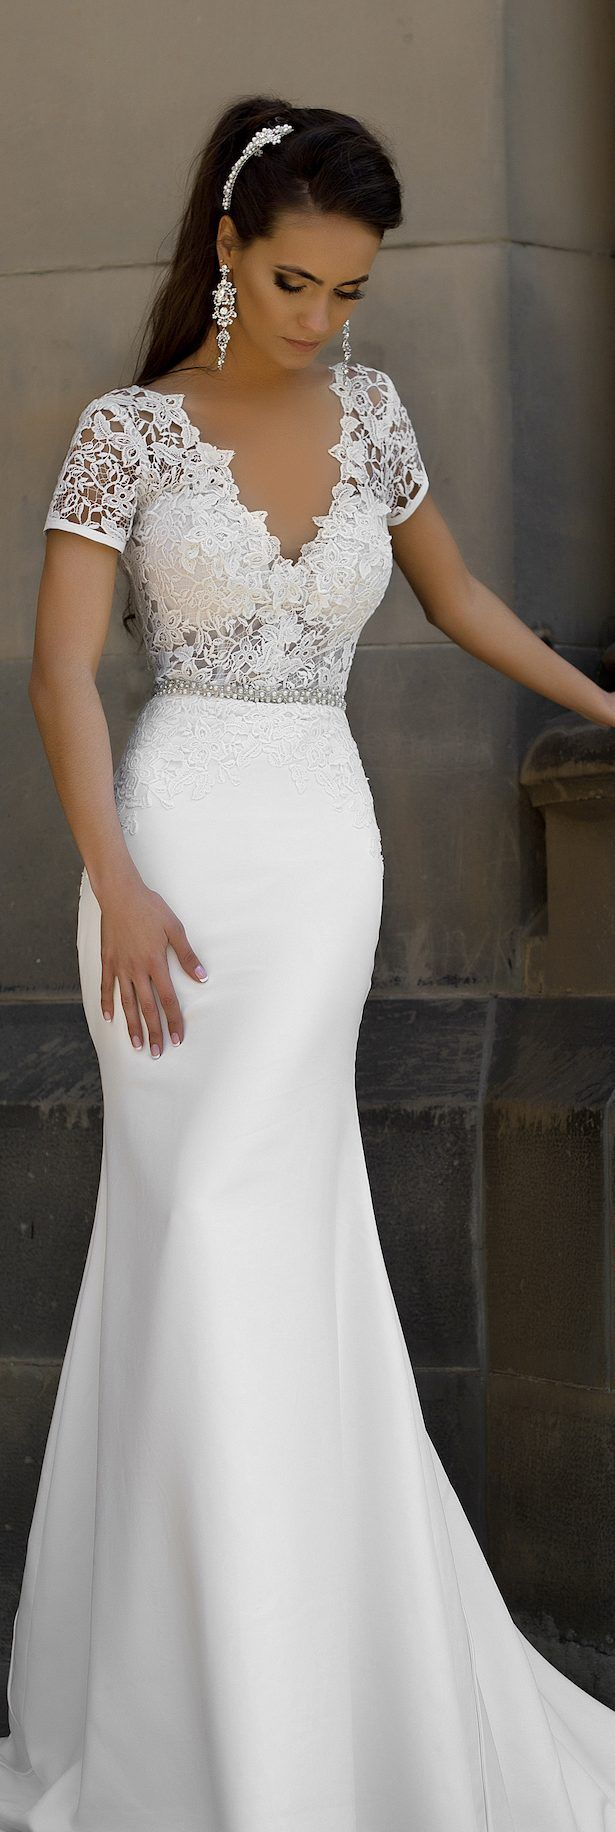 Lace Fitted Wedding Dress By Milla Nova